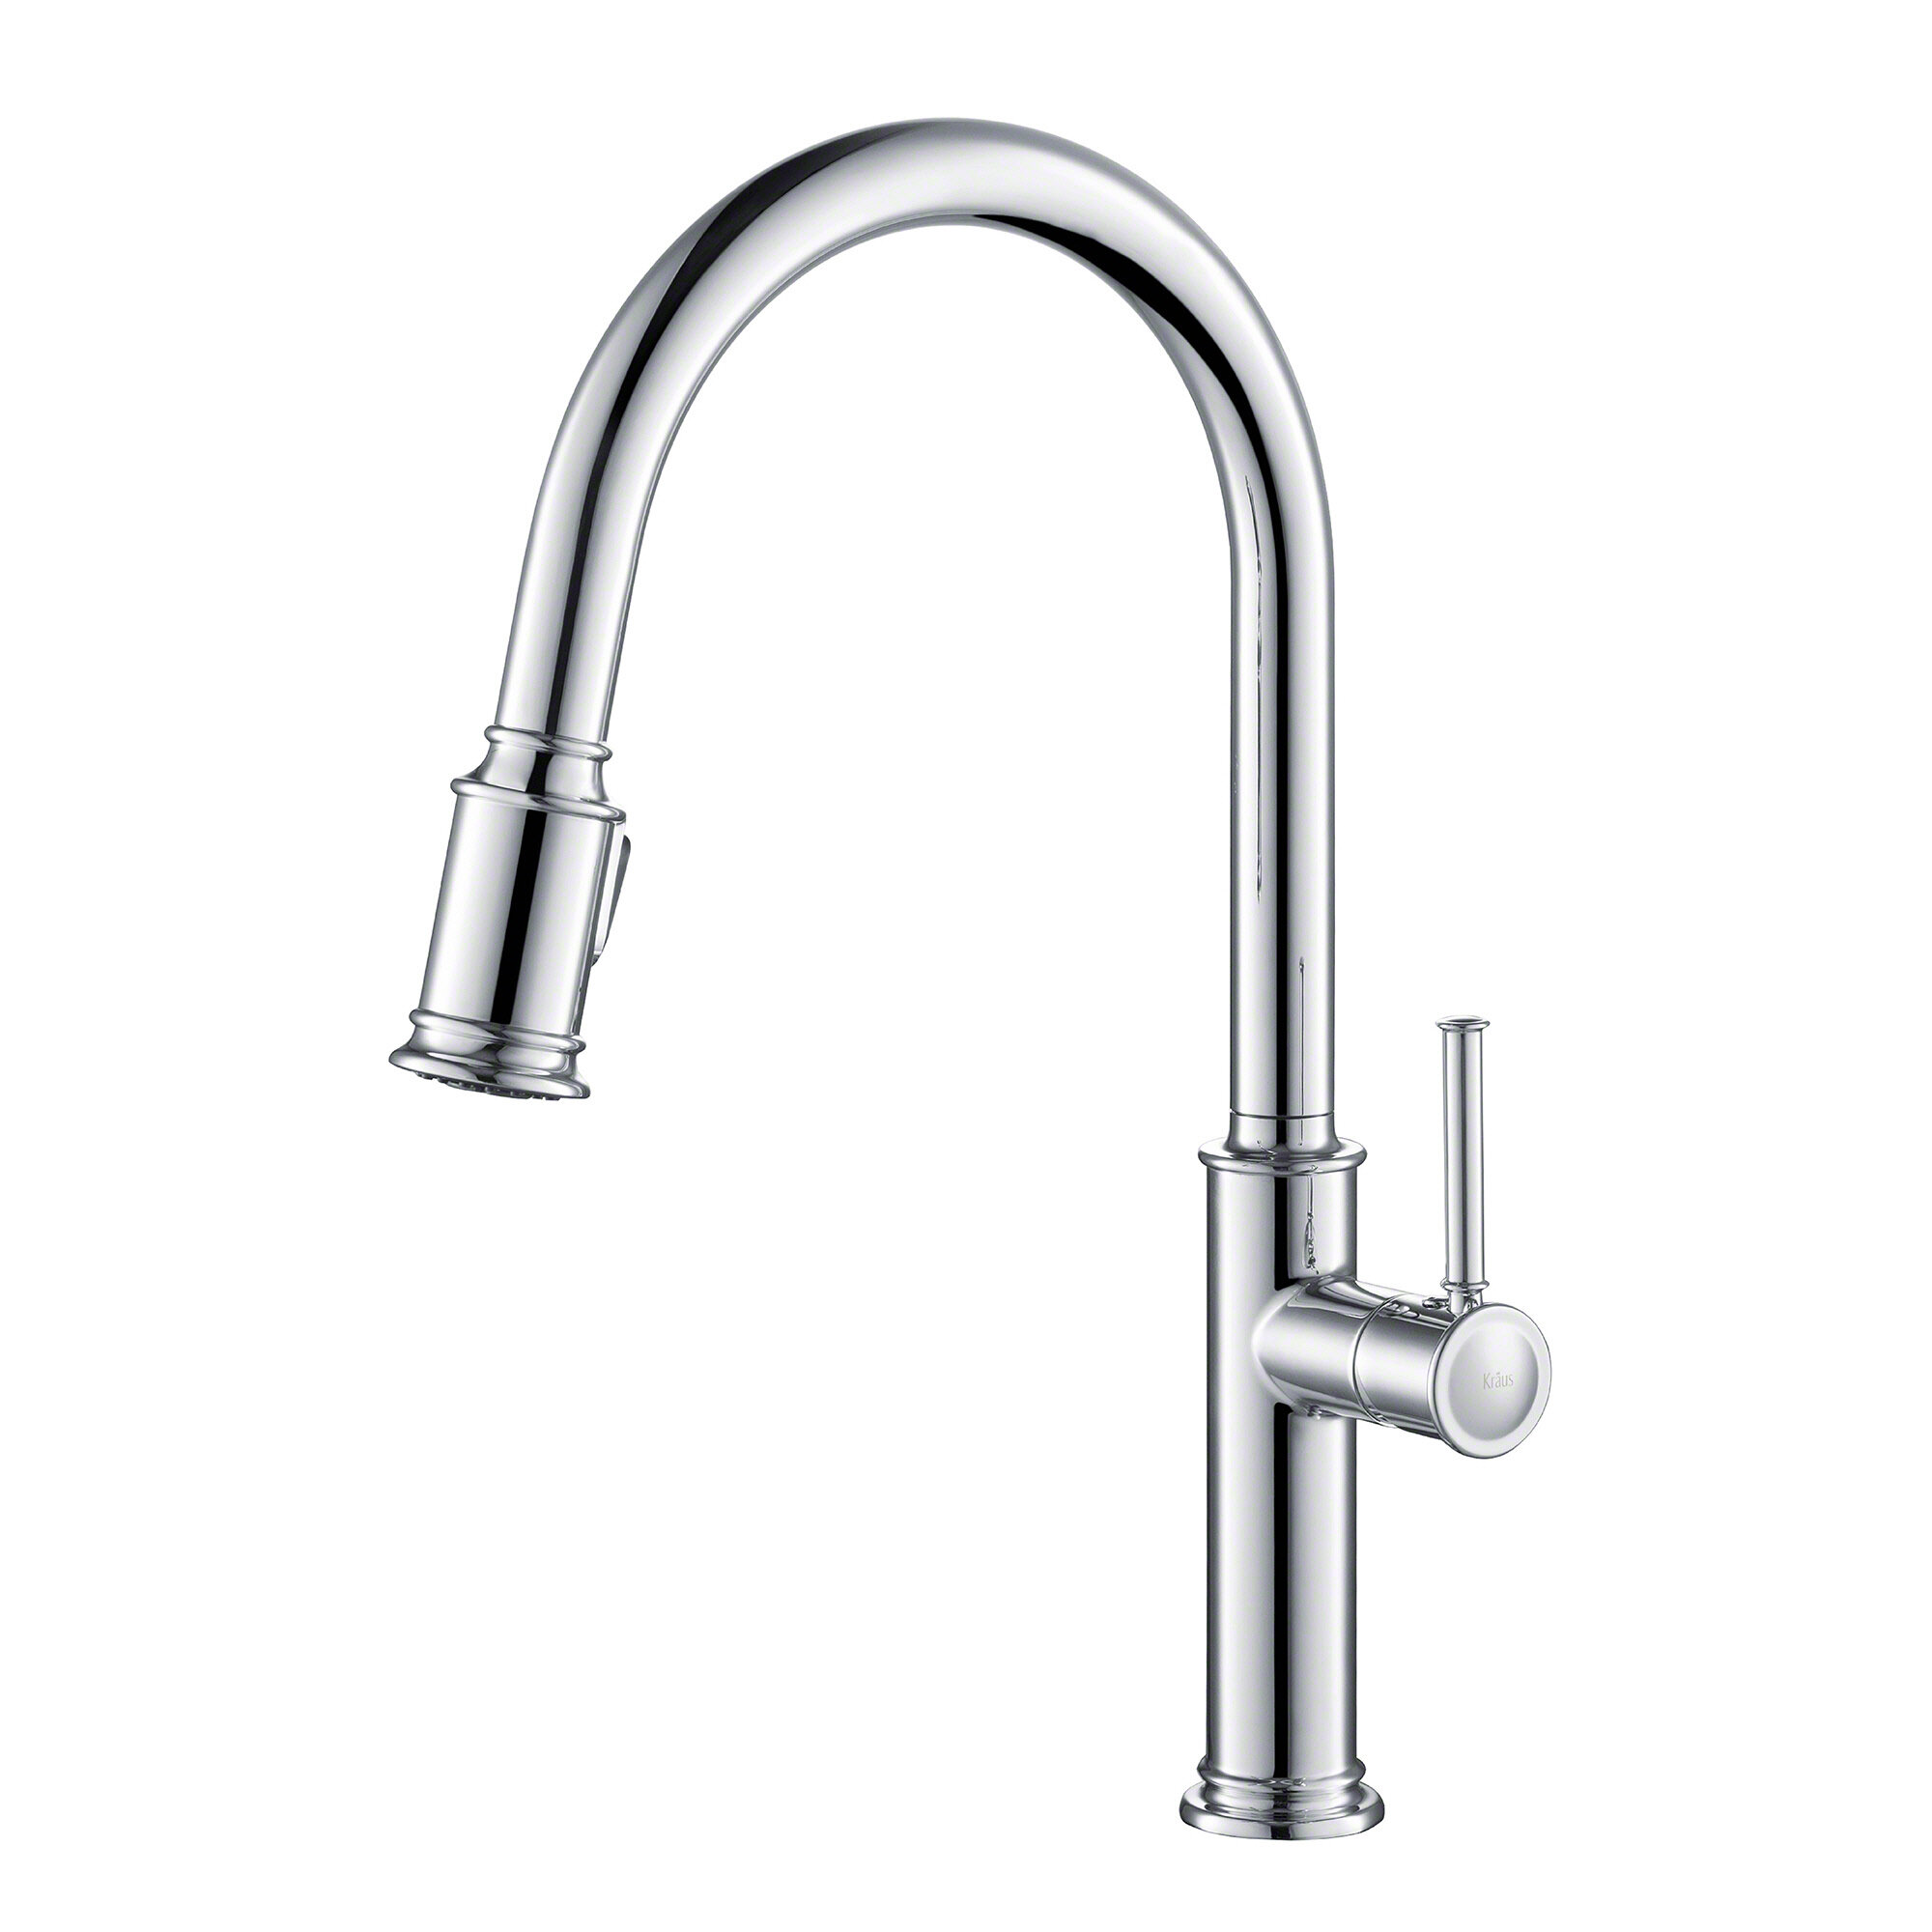 cross bathtub berwick mounted faucets wall faucet american handles with handle bathroom sink standard